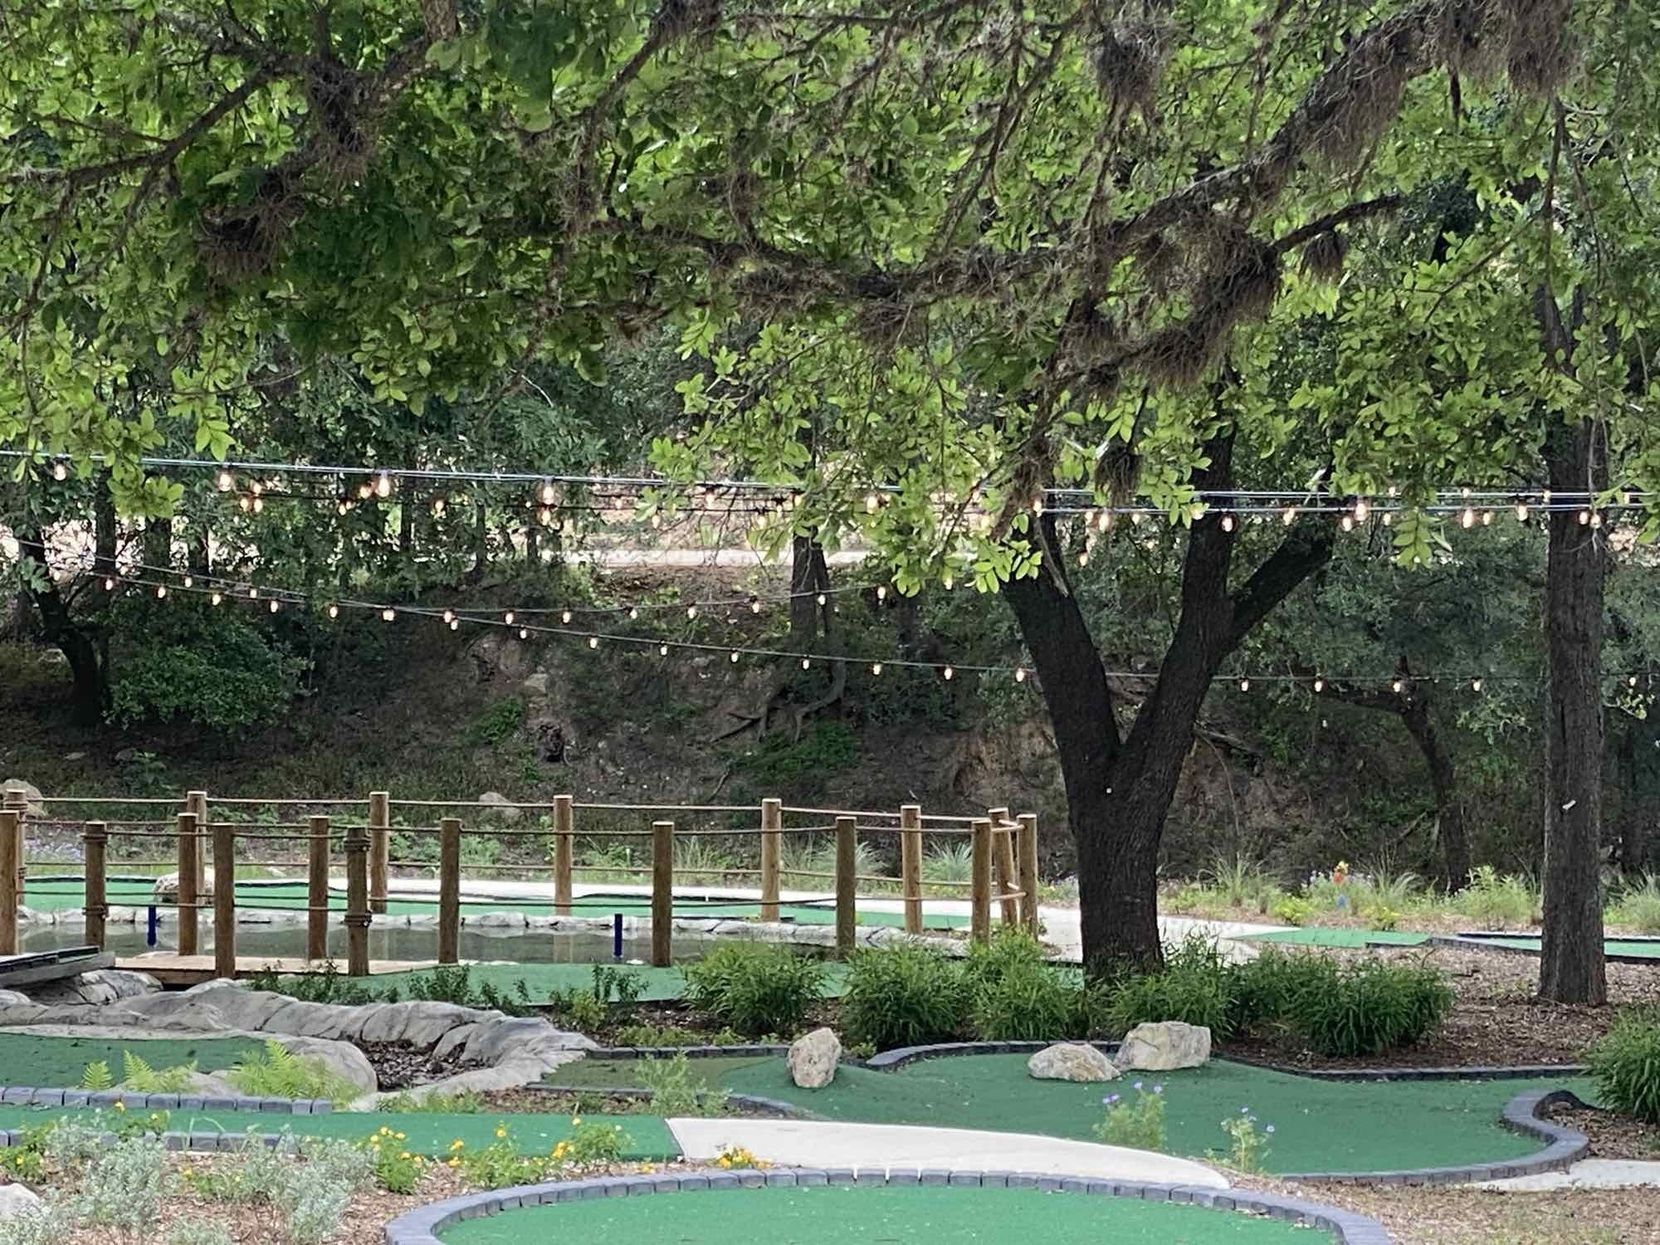 Mini-golf is one of the amenities at Camp Fimfo